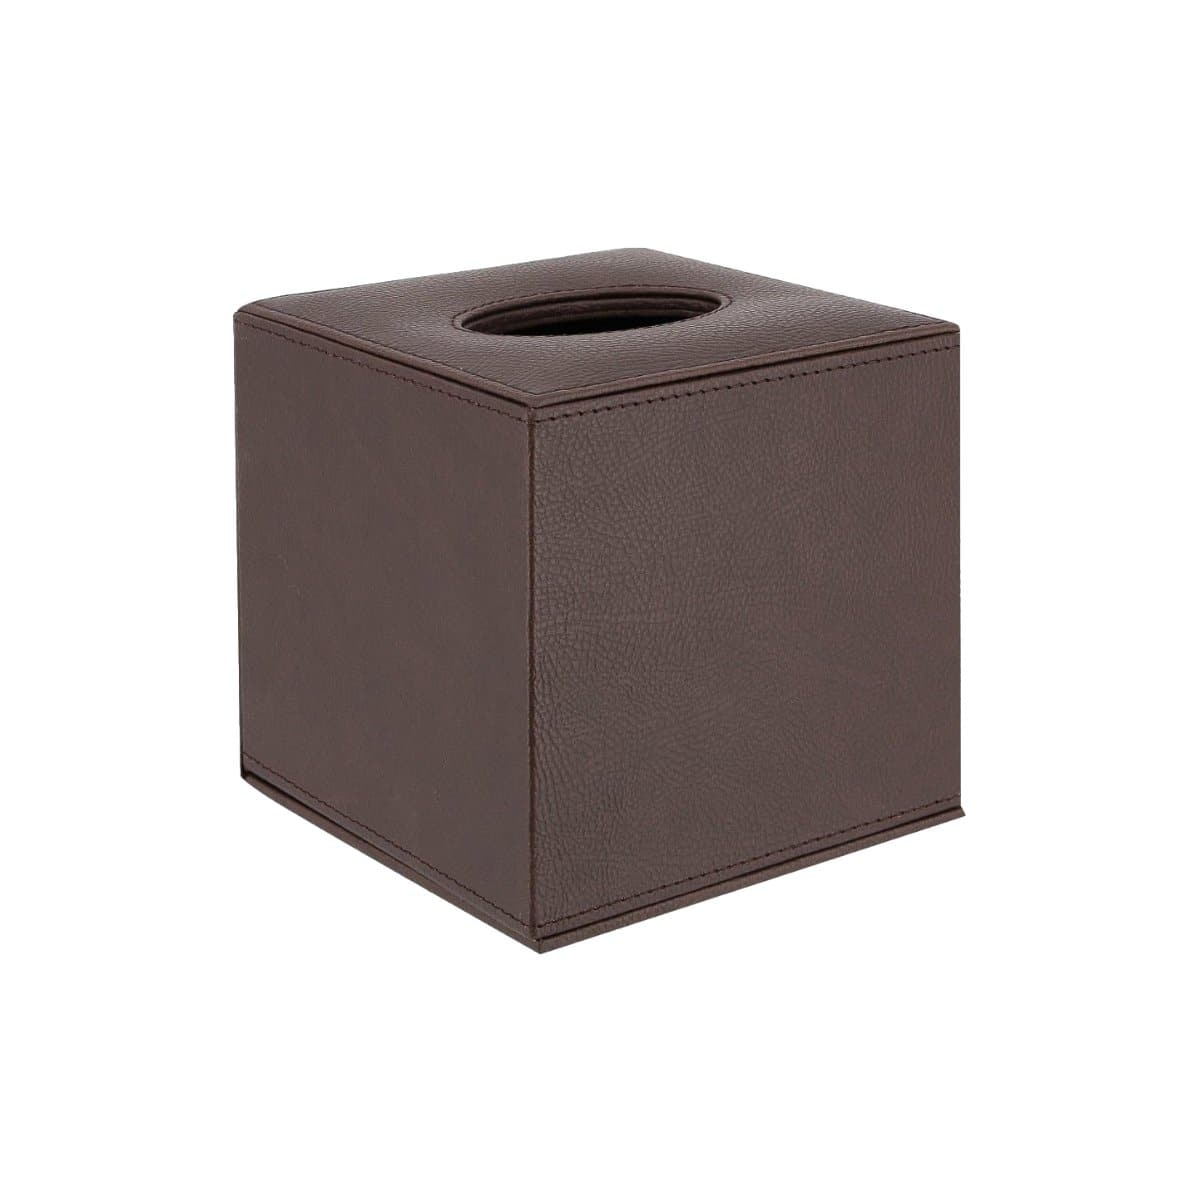 Konrad S. Tissue Box Cover, cube 13 x 13 x 13cm, PU Leather, Brown